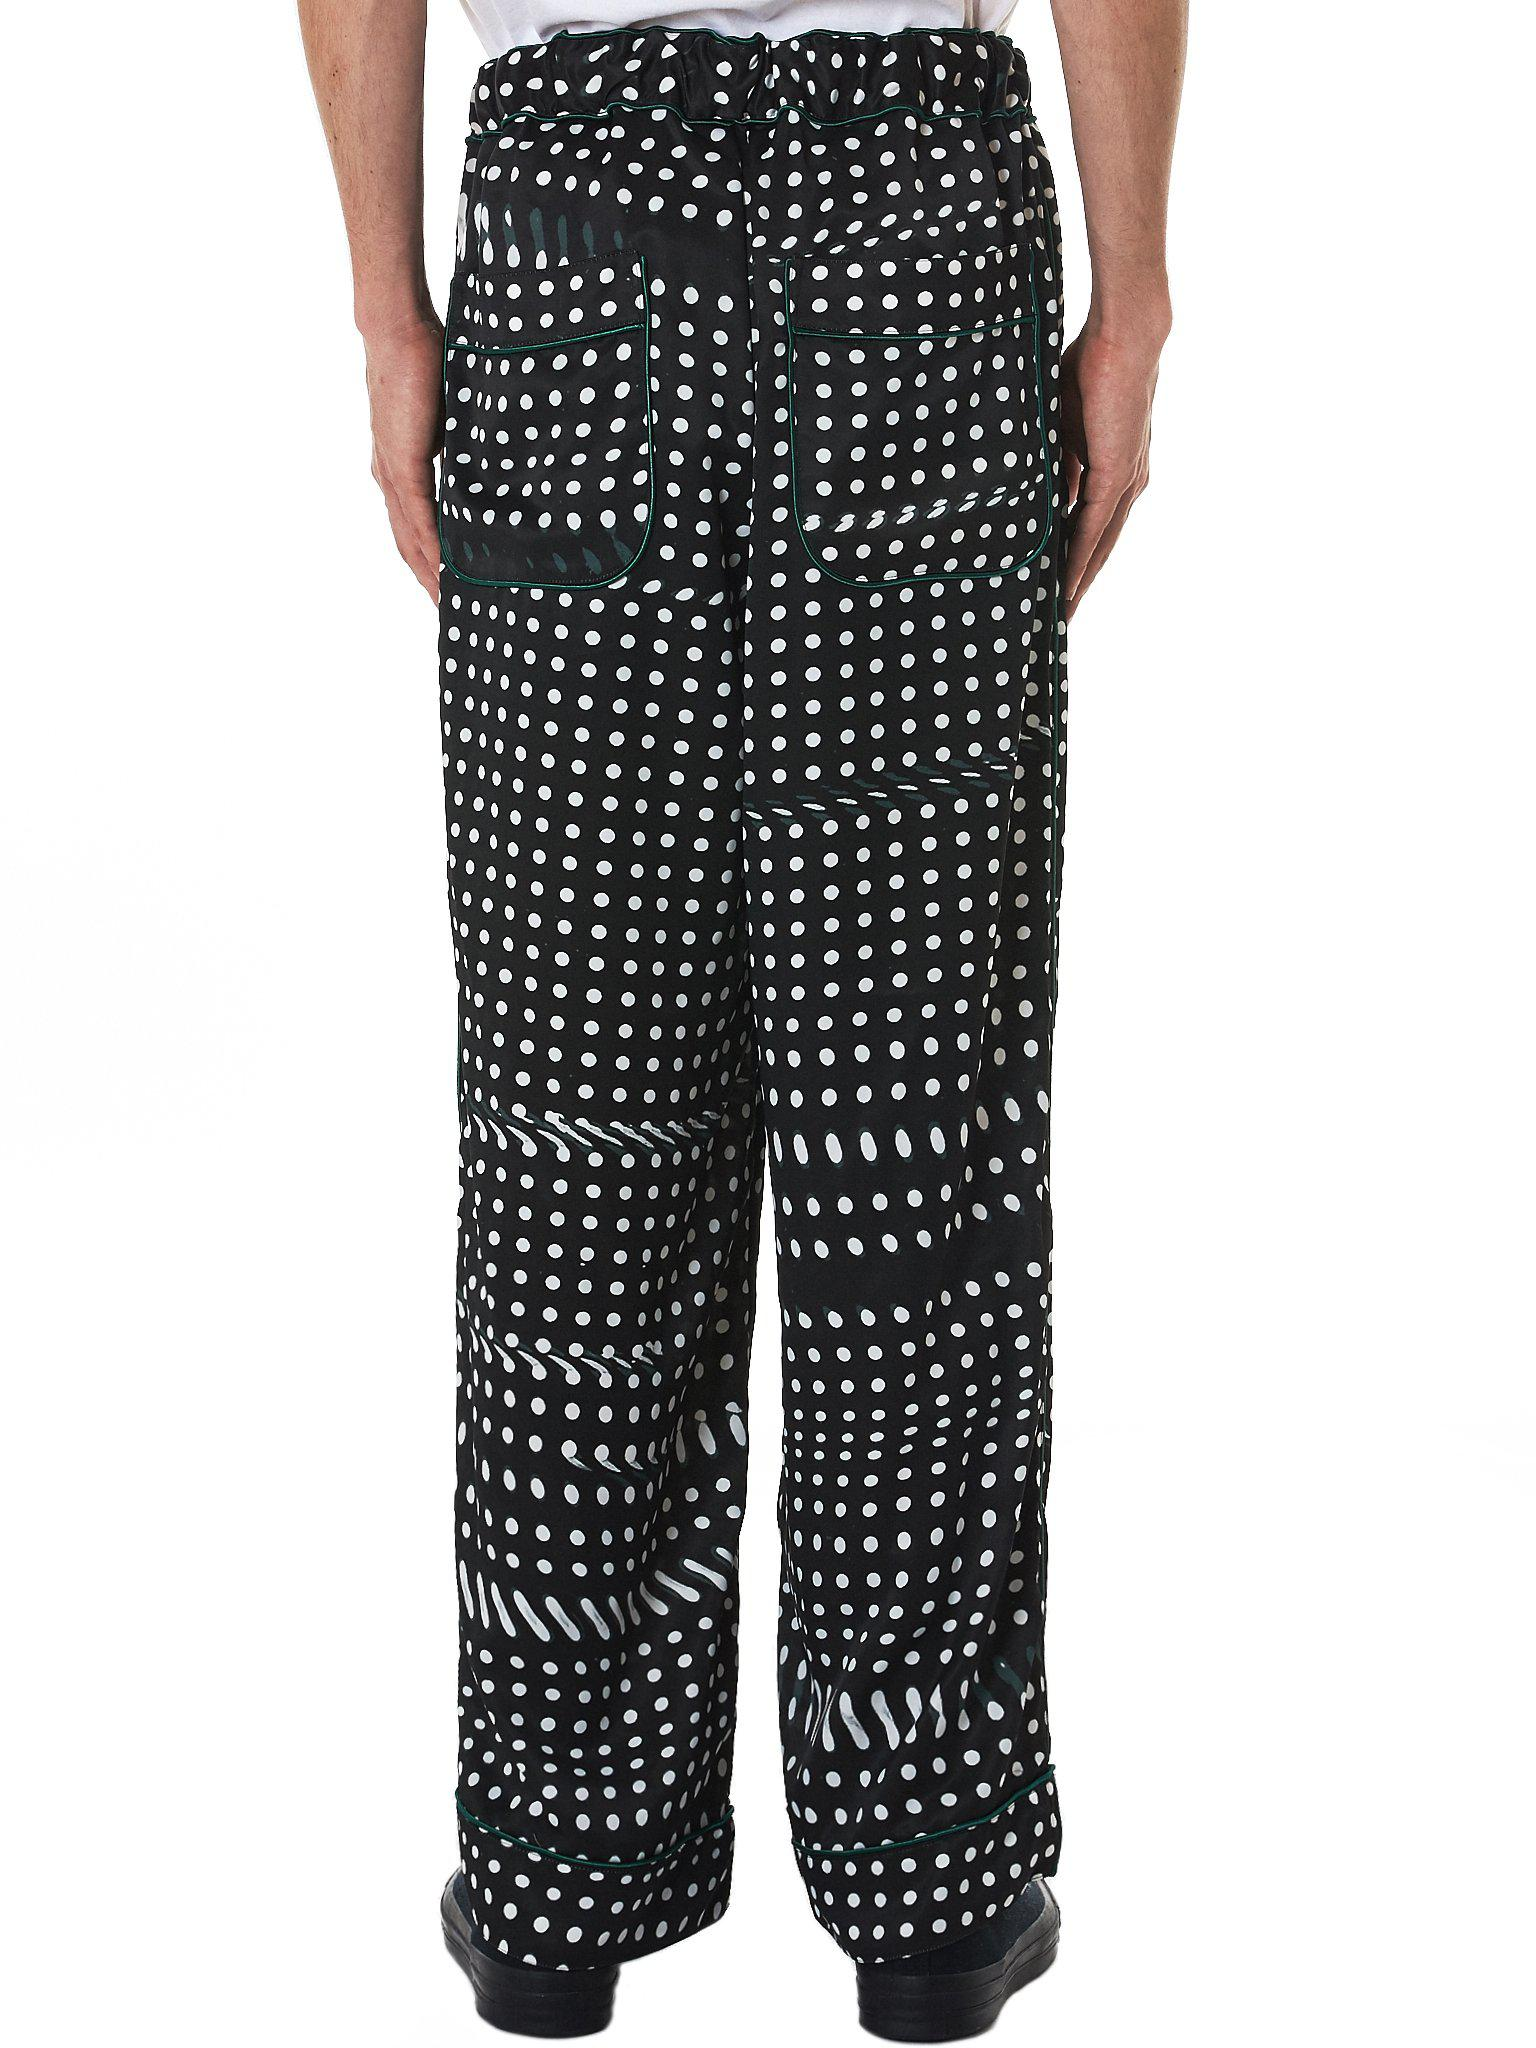 Dotted trousers - Black Facetasm Extremely For Sale Under Sale Online Free Shipping Low Shipping Discount Wholesale 3PTtm